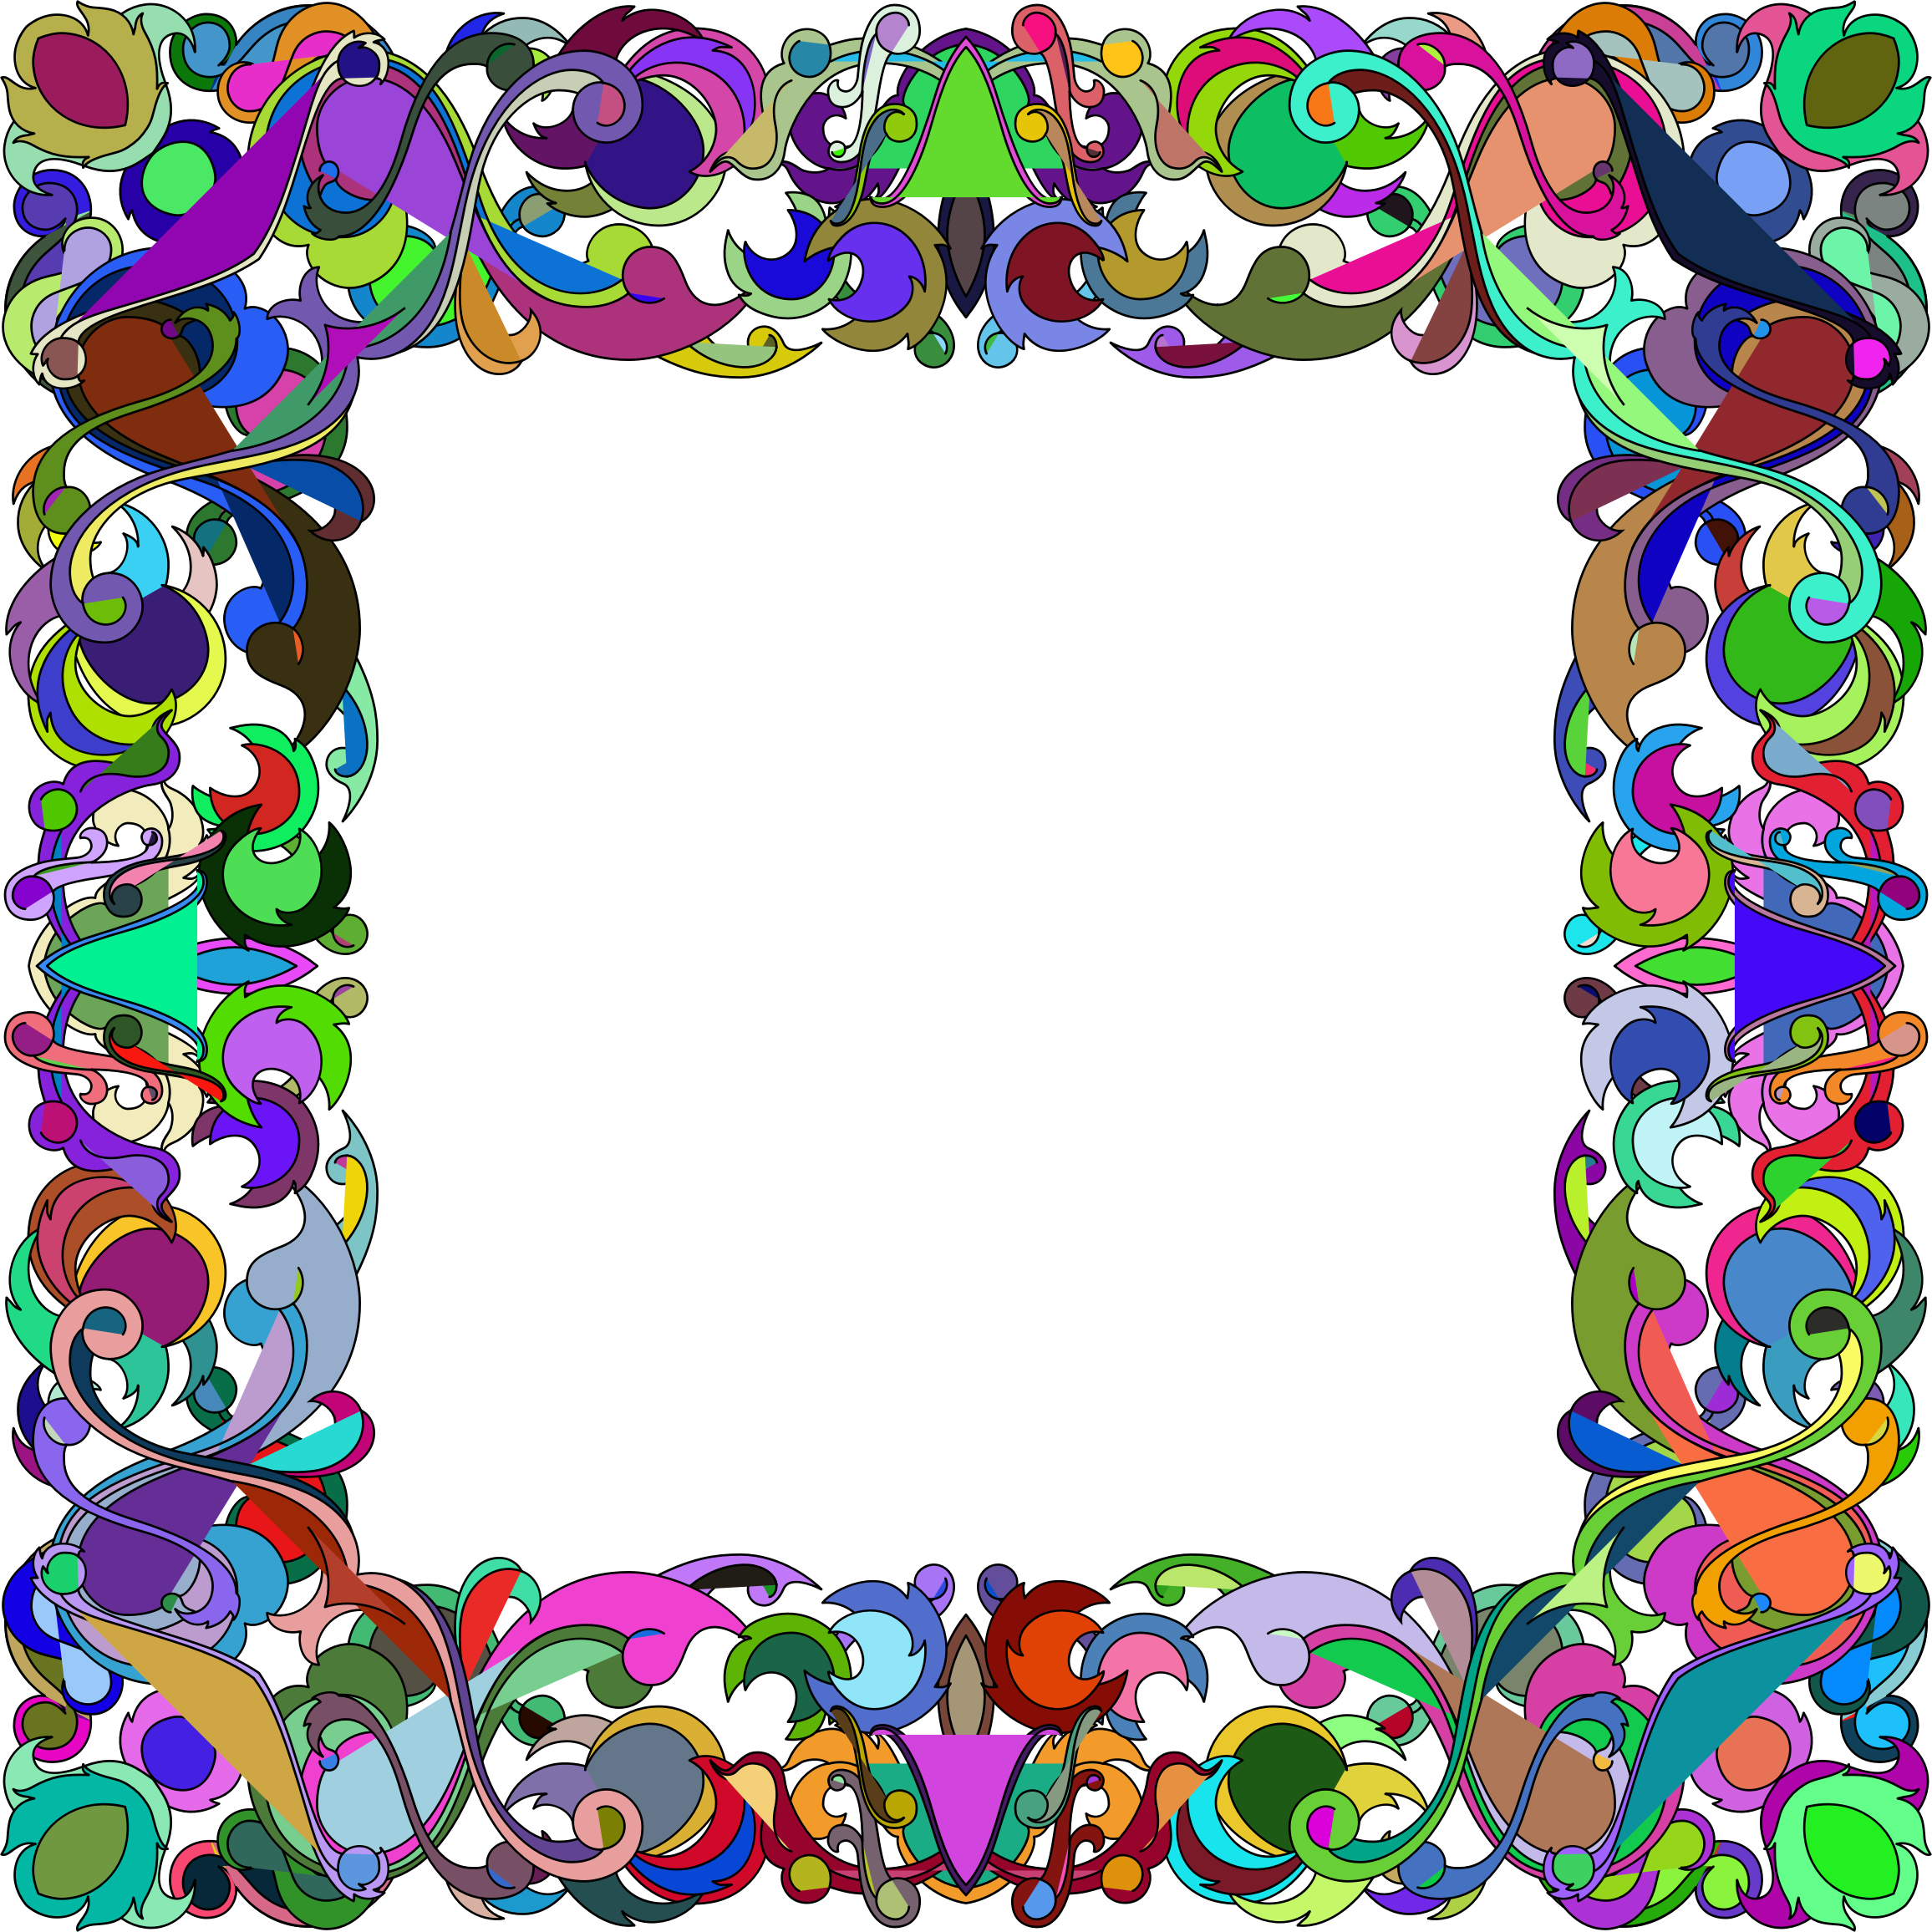 Frame clipart colorful. Abstract big image png